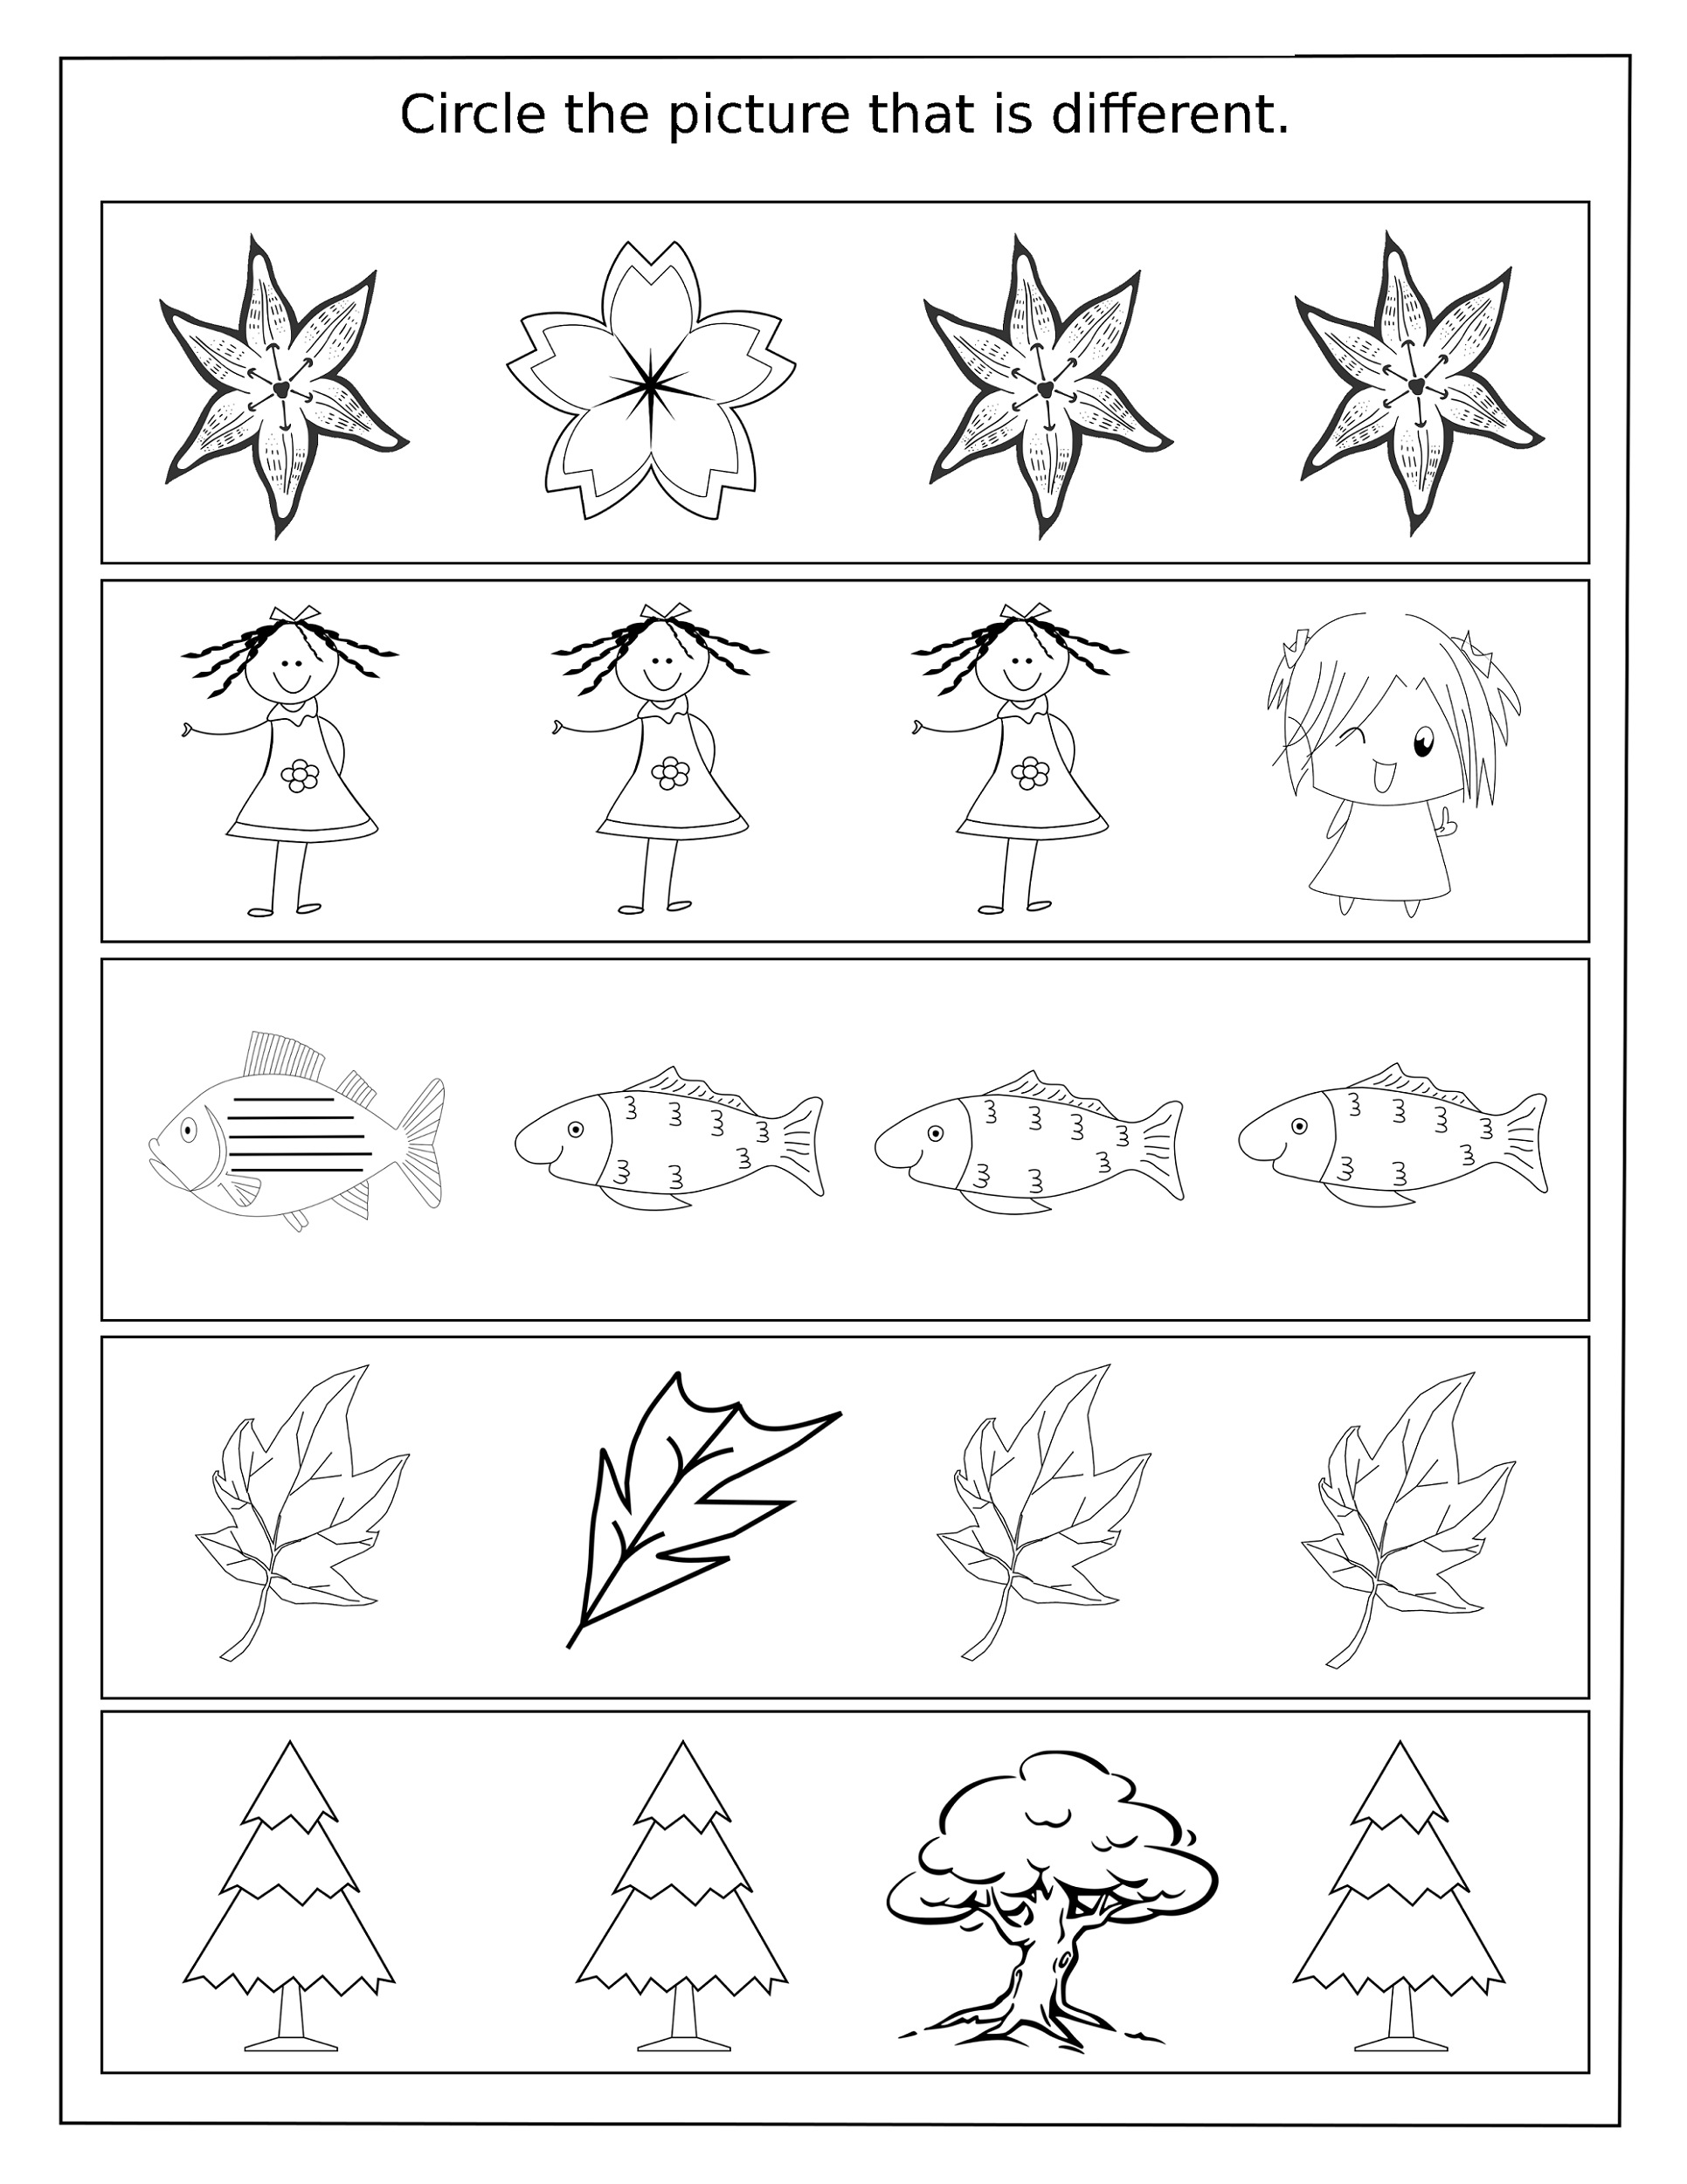 same-and-different-worksheets-activity